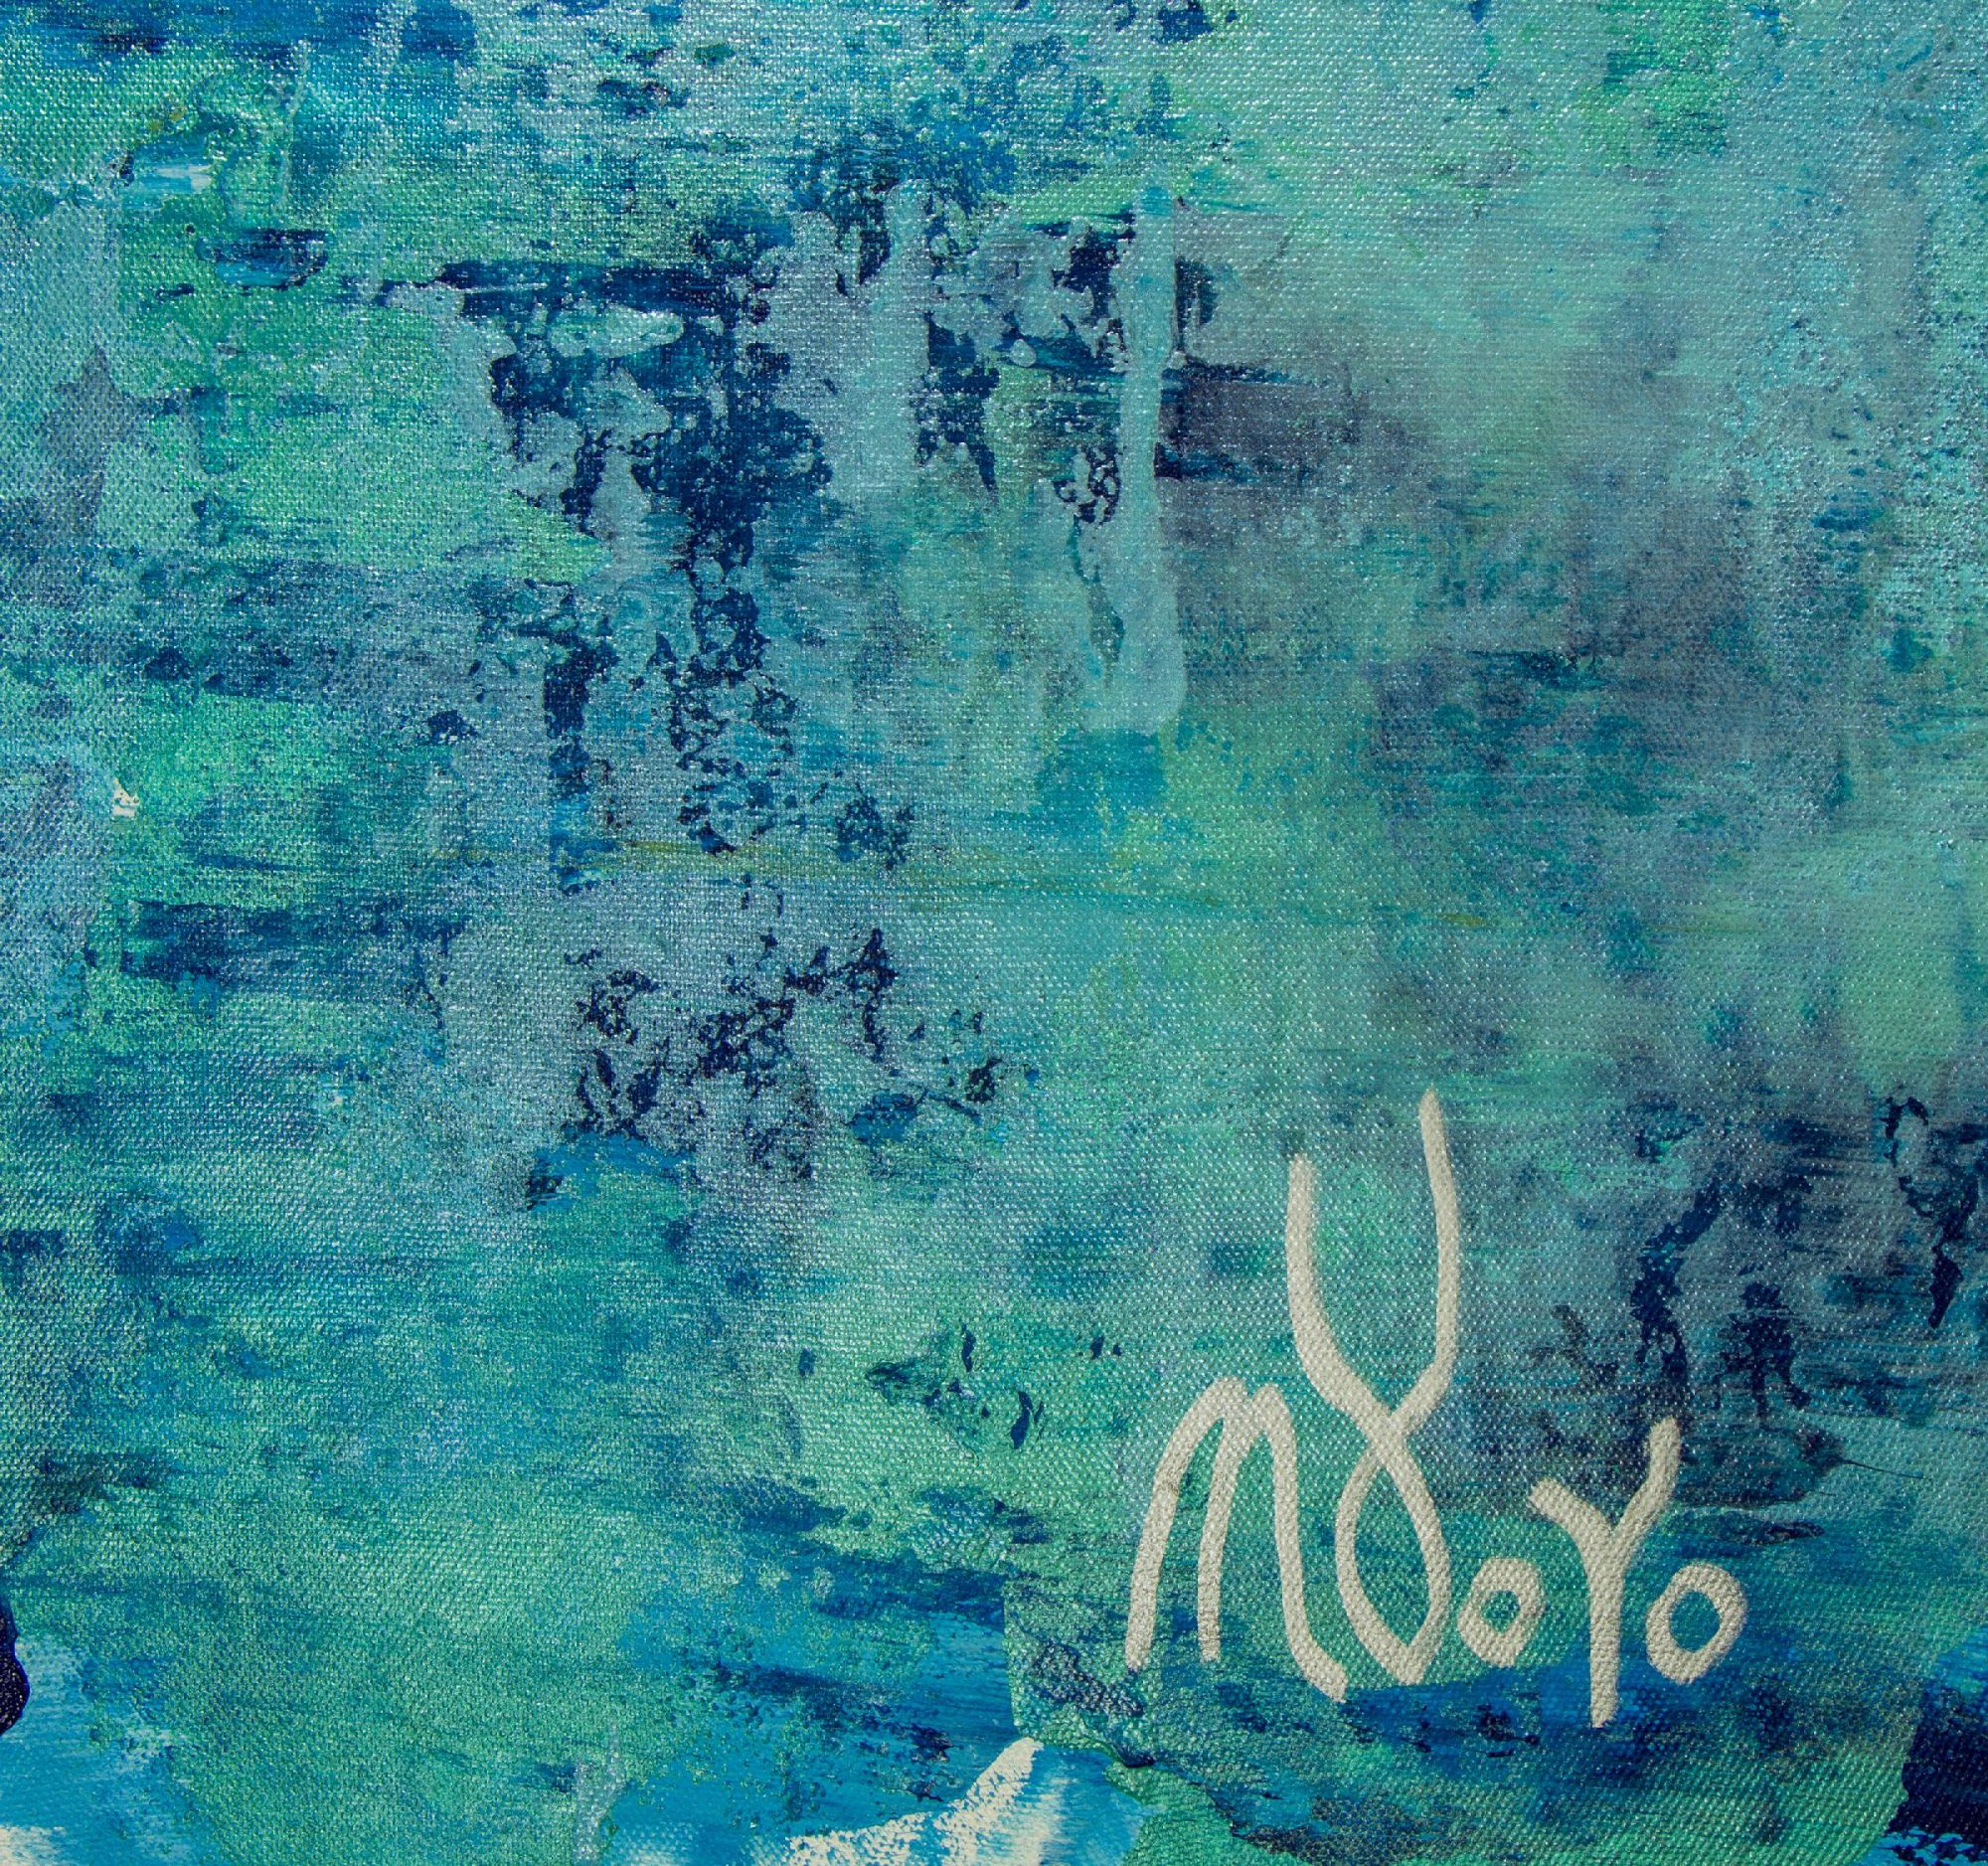 SOLD - Signature Detail / The Deepest Ocean (Turquoise spectra) 2 (2020) by Nestor Toro